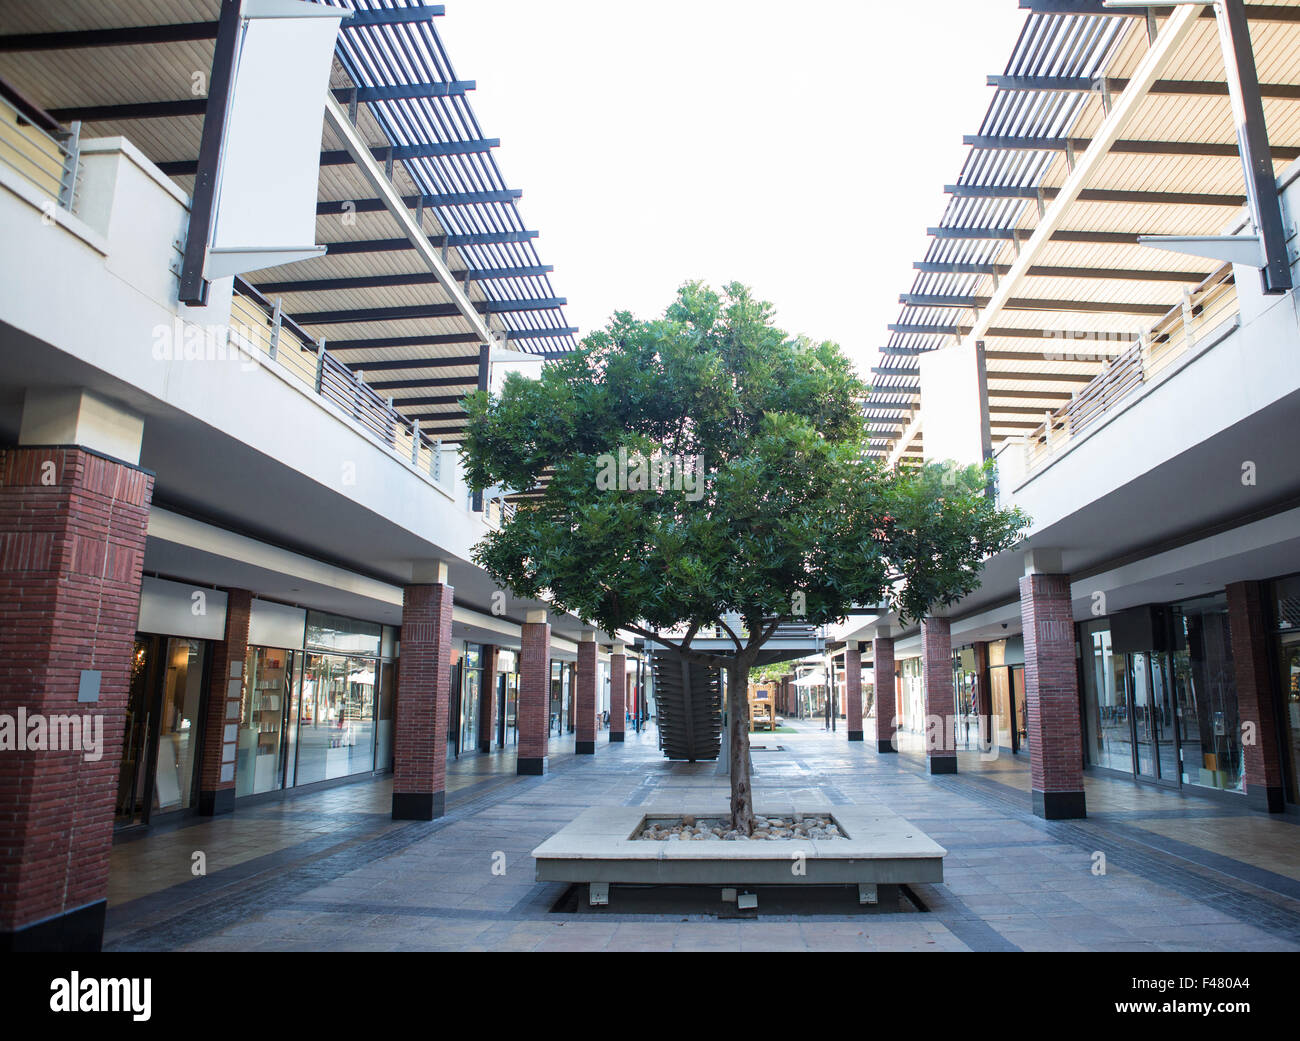 Courtyard of a shopping centre - Stock Image